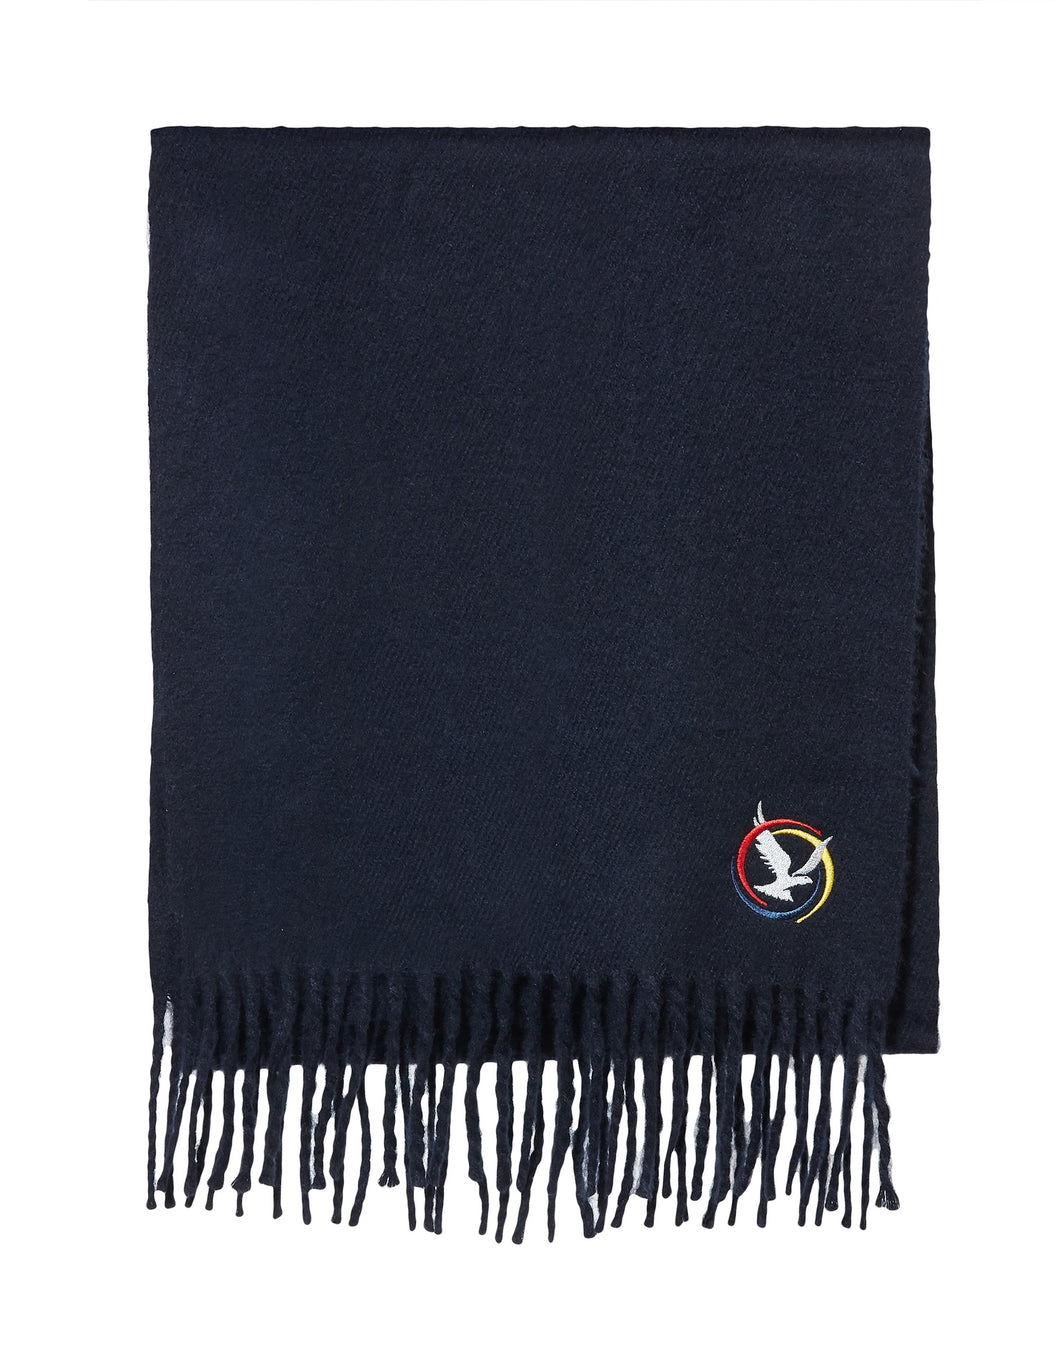 NMH Scarf